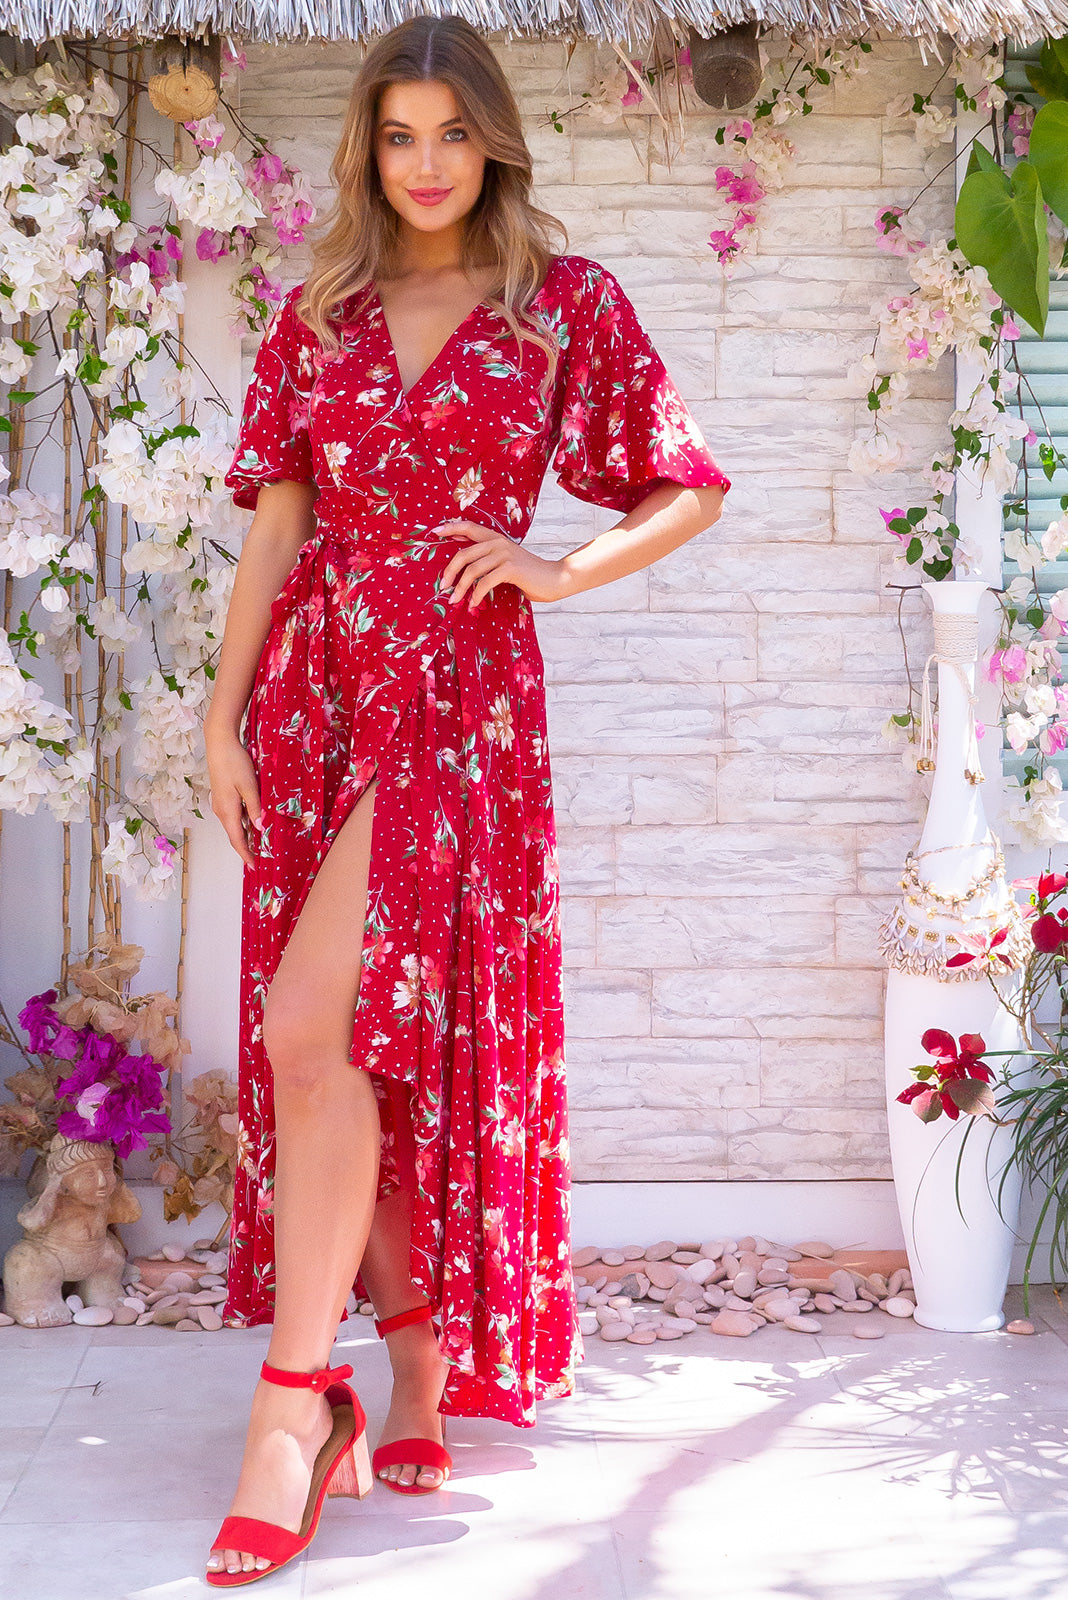 Petal Summer Red Maxi Wrap Dress made from 100% rayon, floral vintage inspired design with flutter sleeves and full skirt.